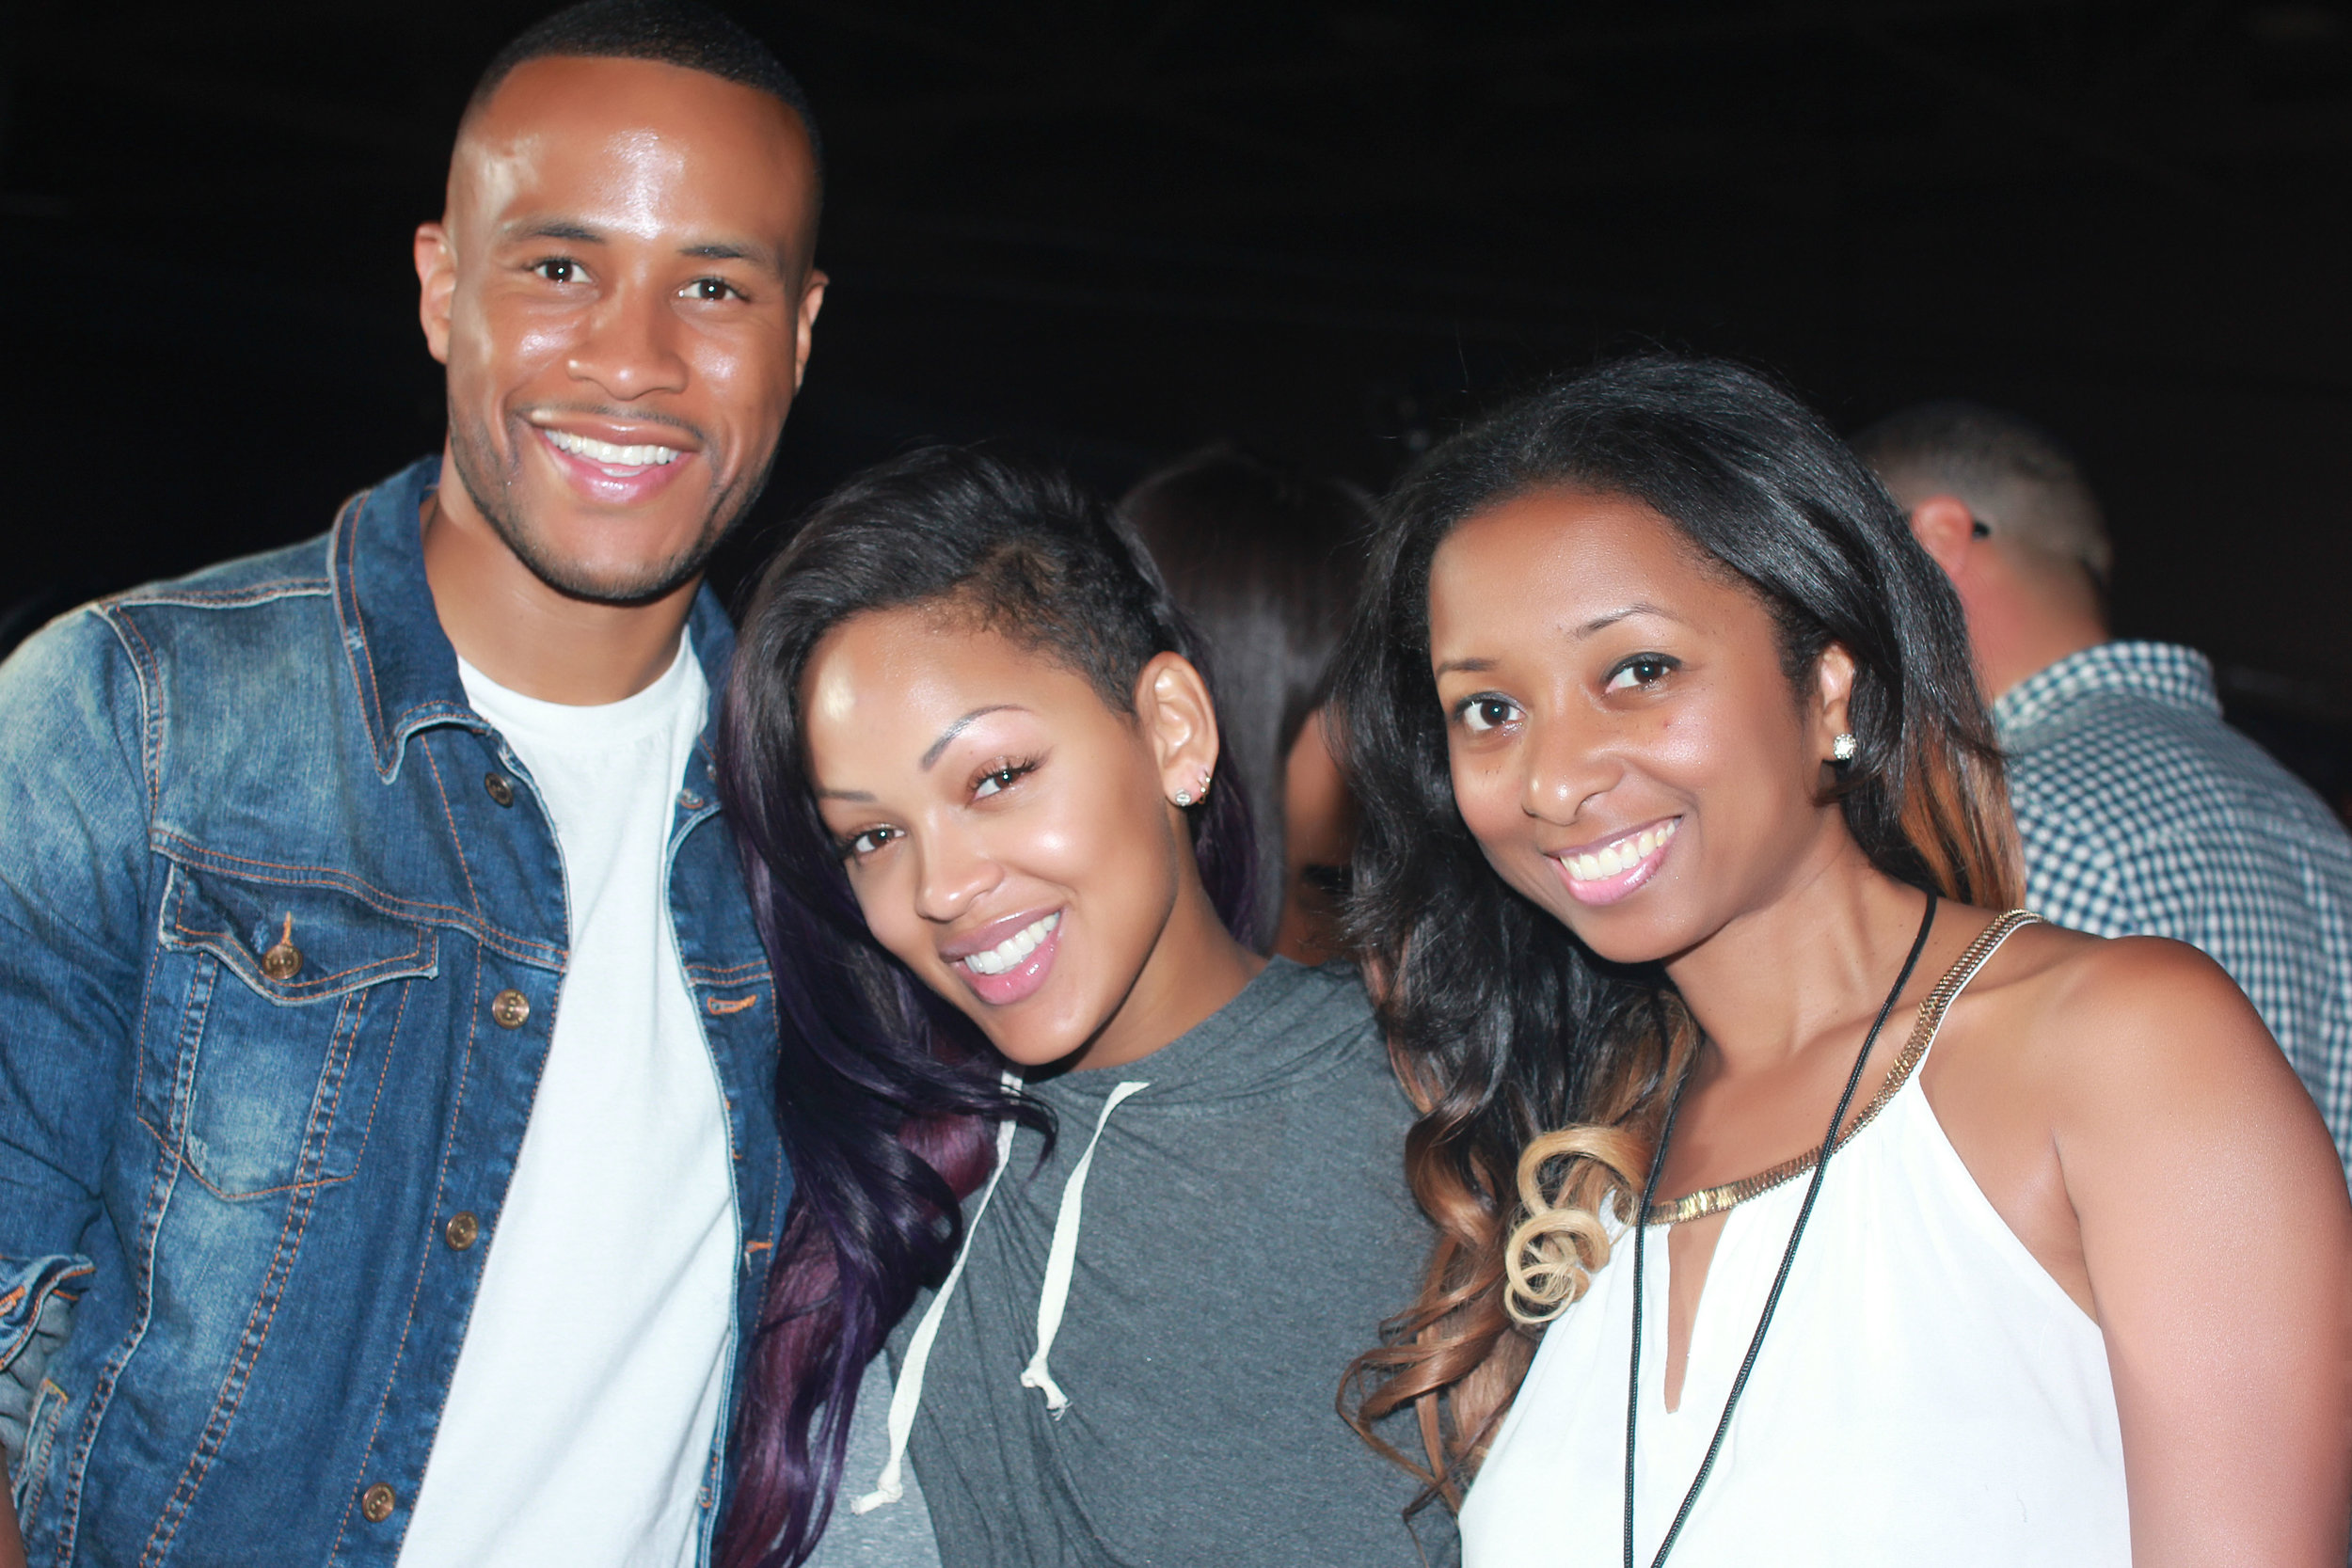 A Megafest moment with DeVon and Meagan Good Franklin.